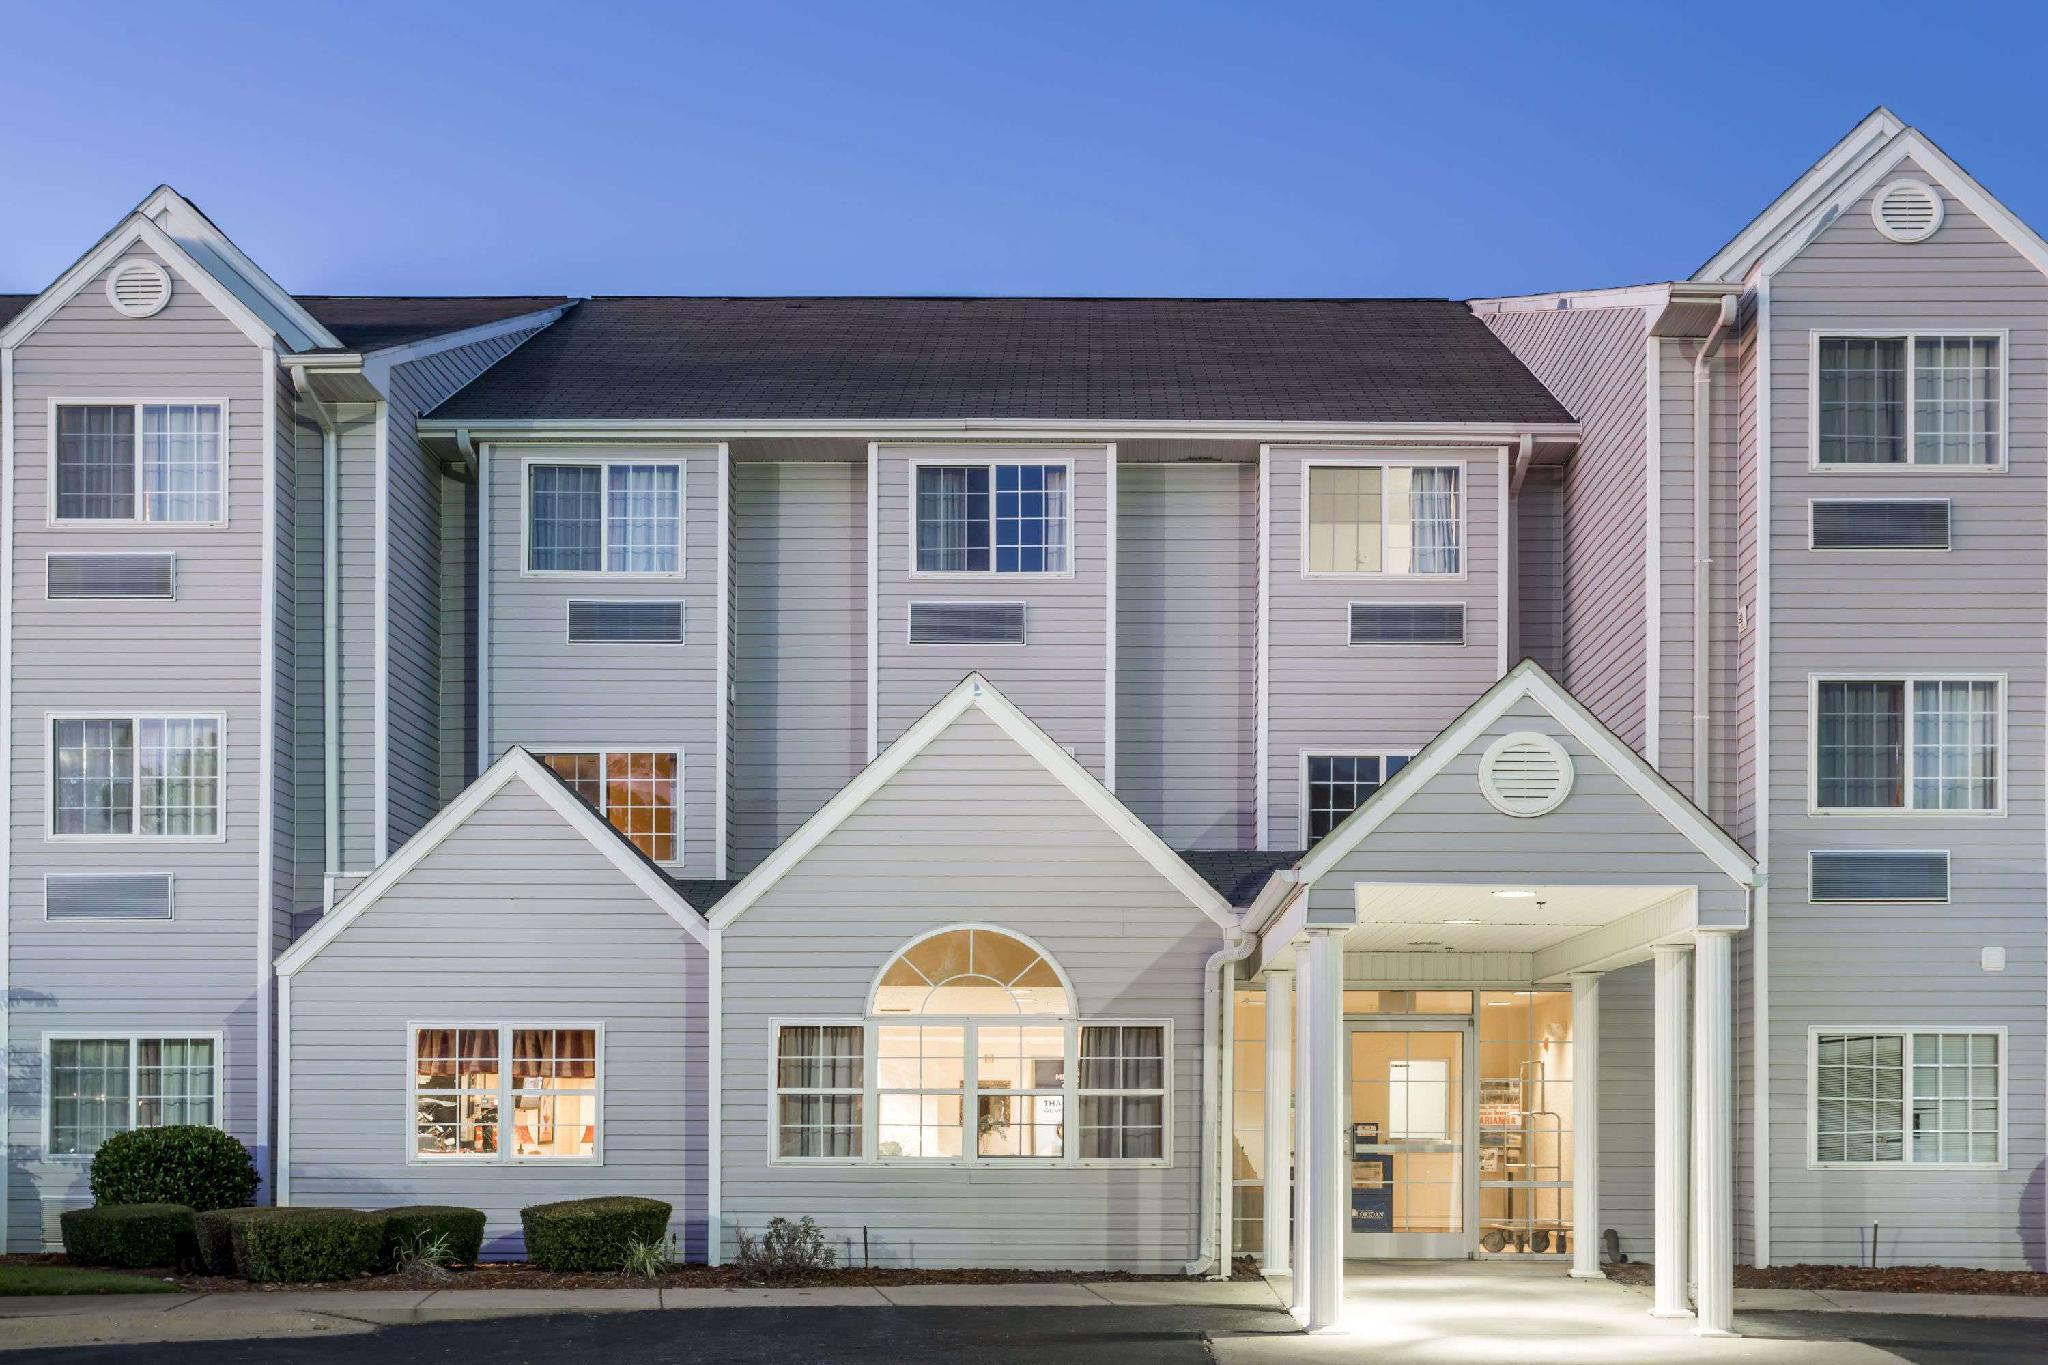 Microtel Inn And Suites By Wyndham Marianna